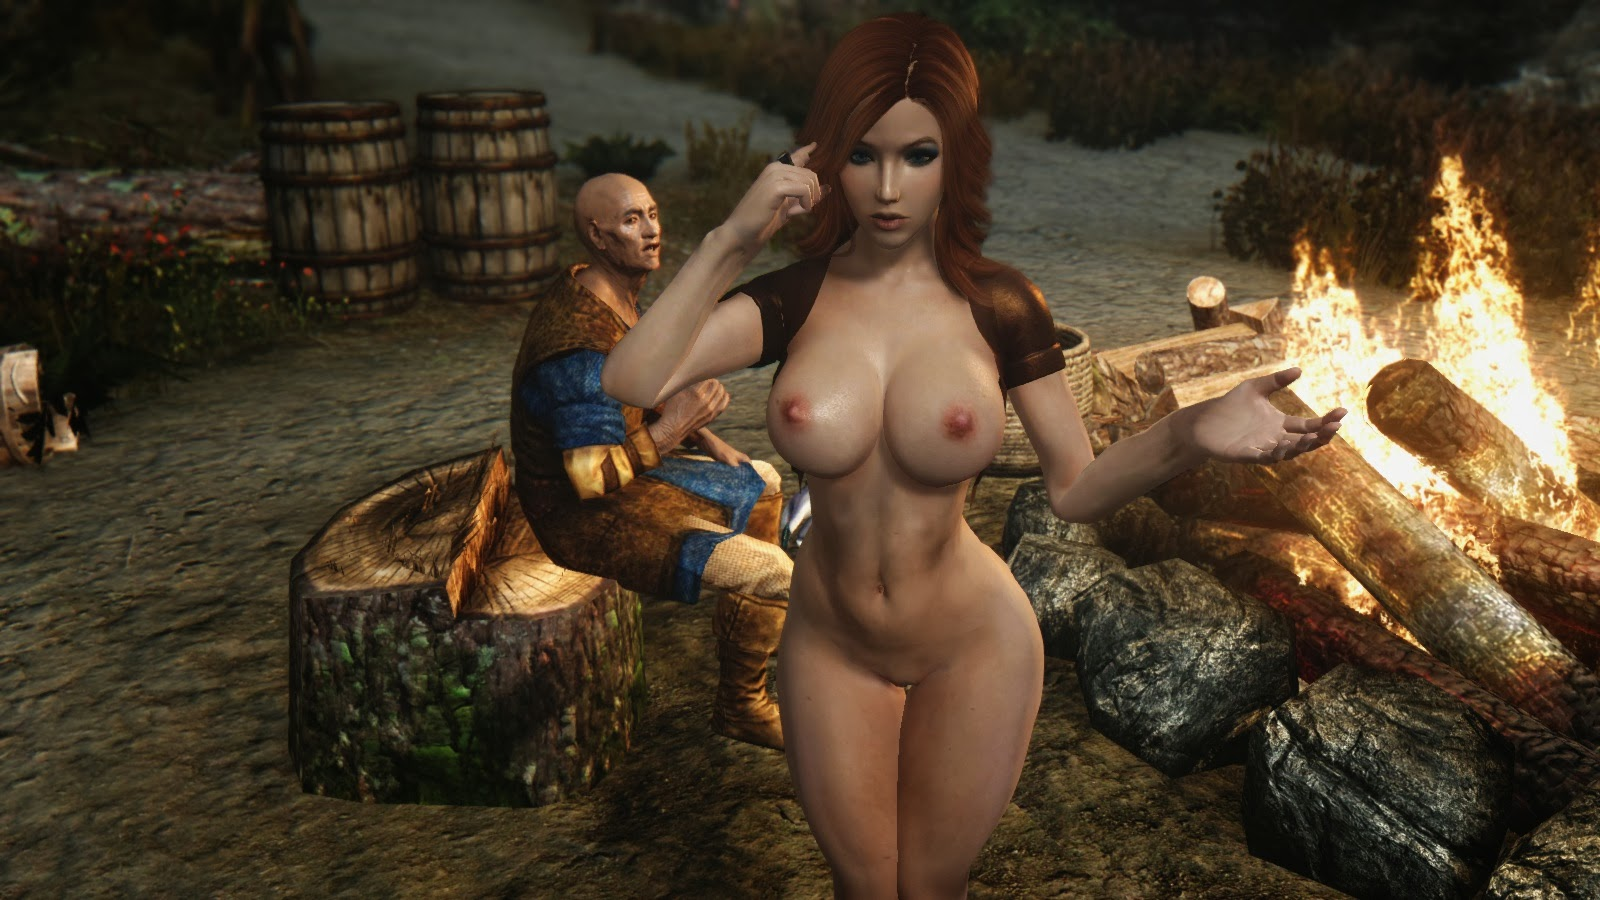 Mod skyrim erotic mods naked photo